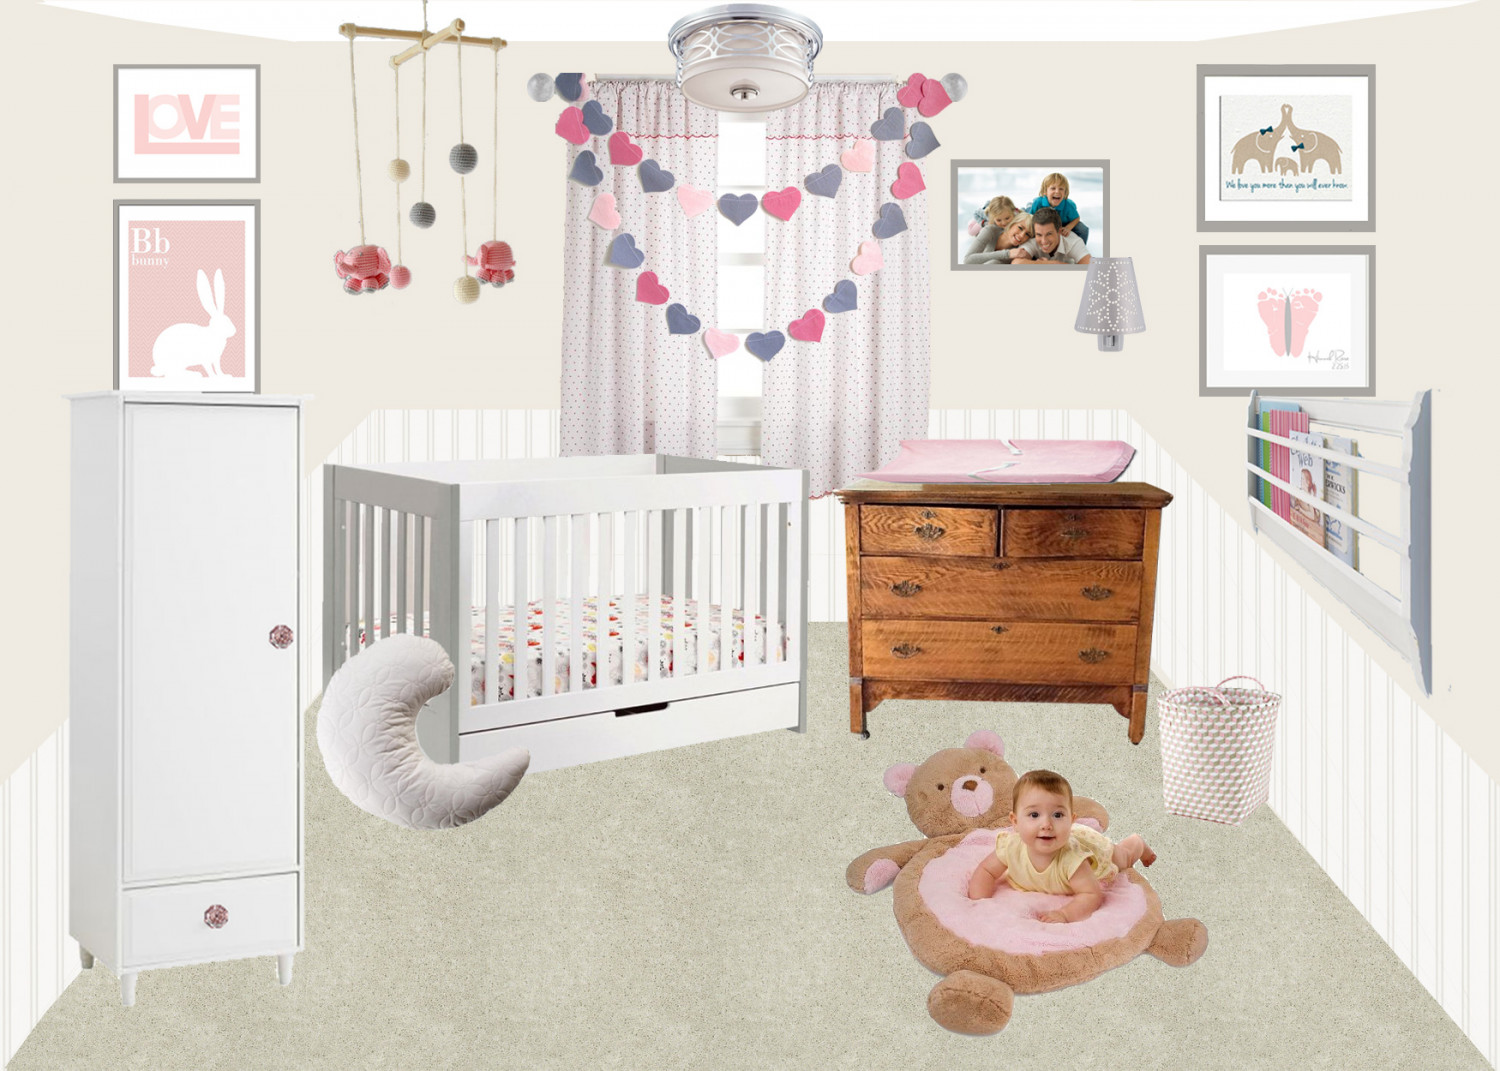 Nursery Room Design Infographic